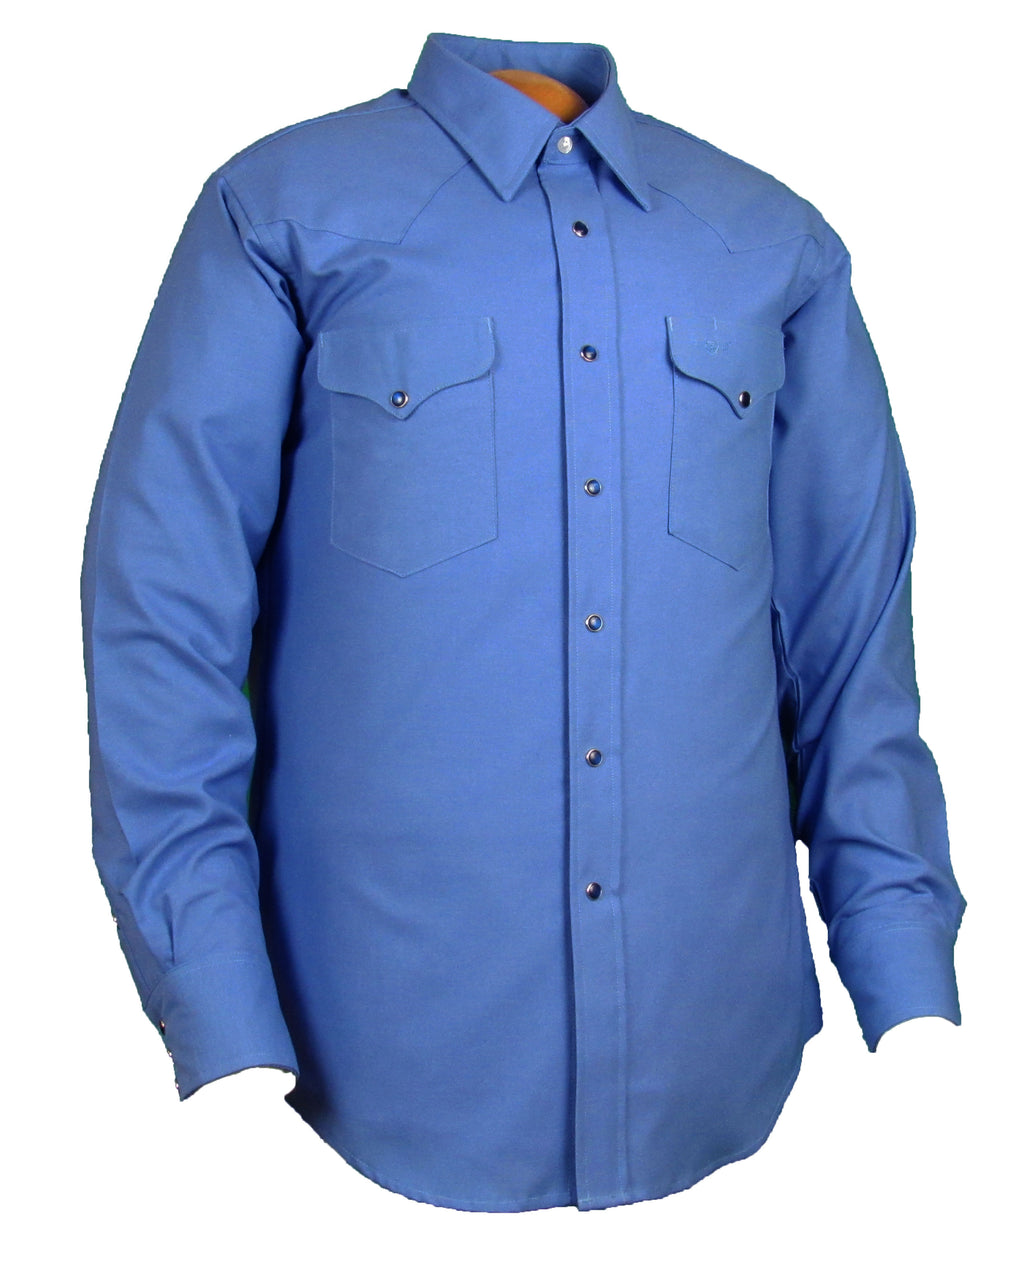 Flying R Ranchwear - Solid Oxford - Pacific Blue - Snaps